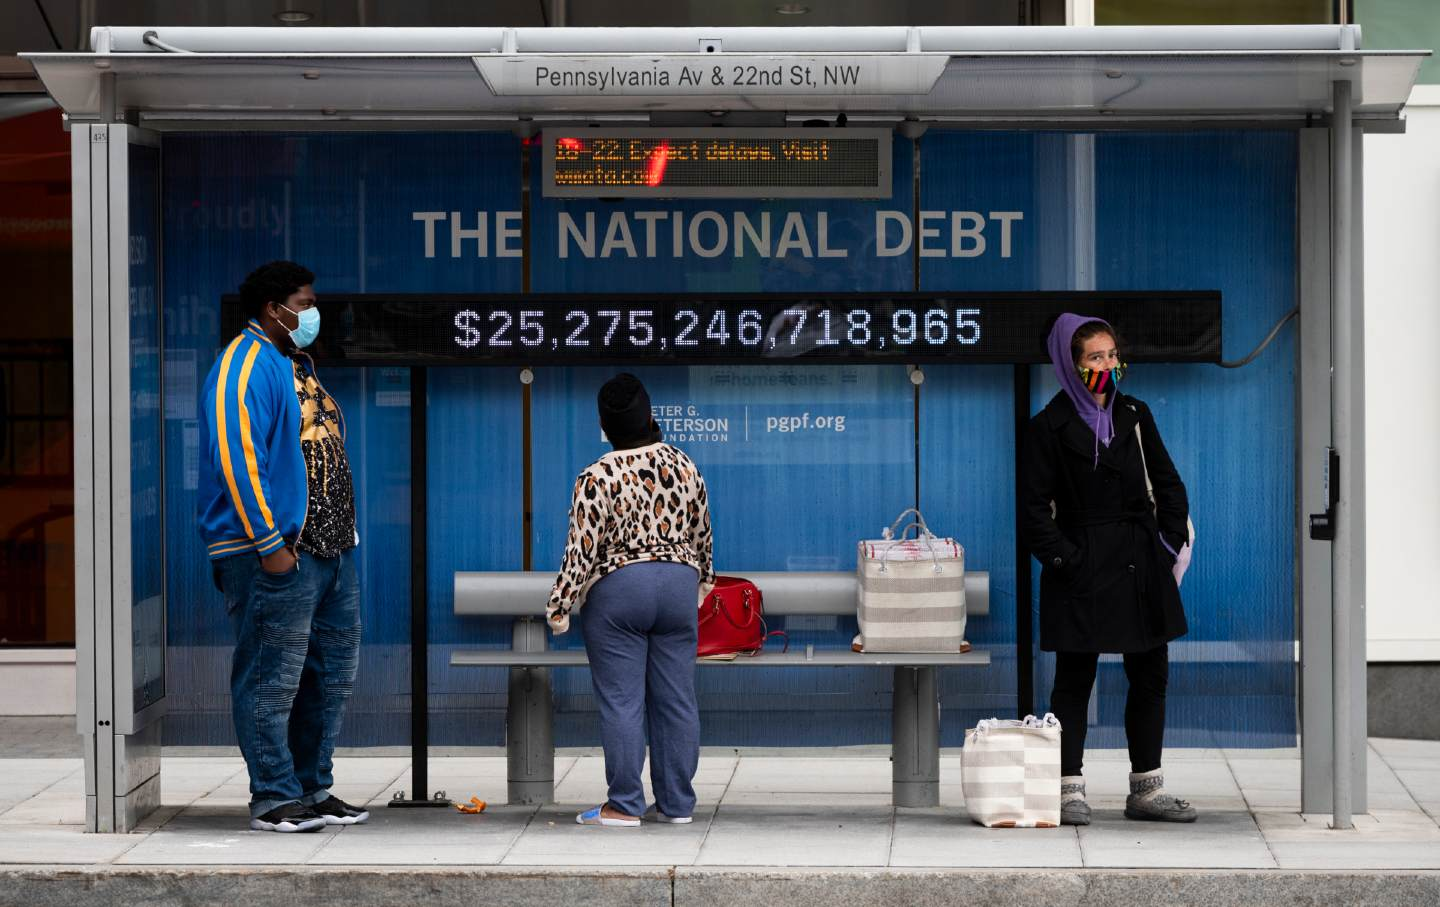 Passengers wearing face masks wait for their bus in front of a national debt display